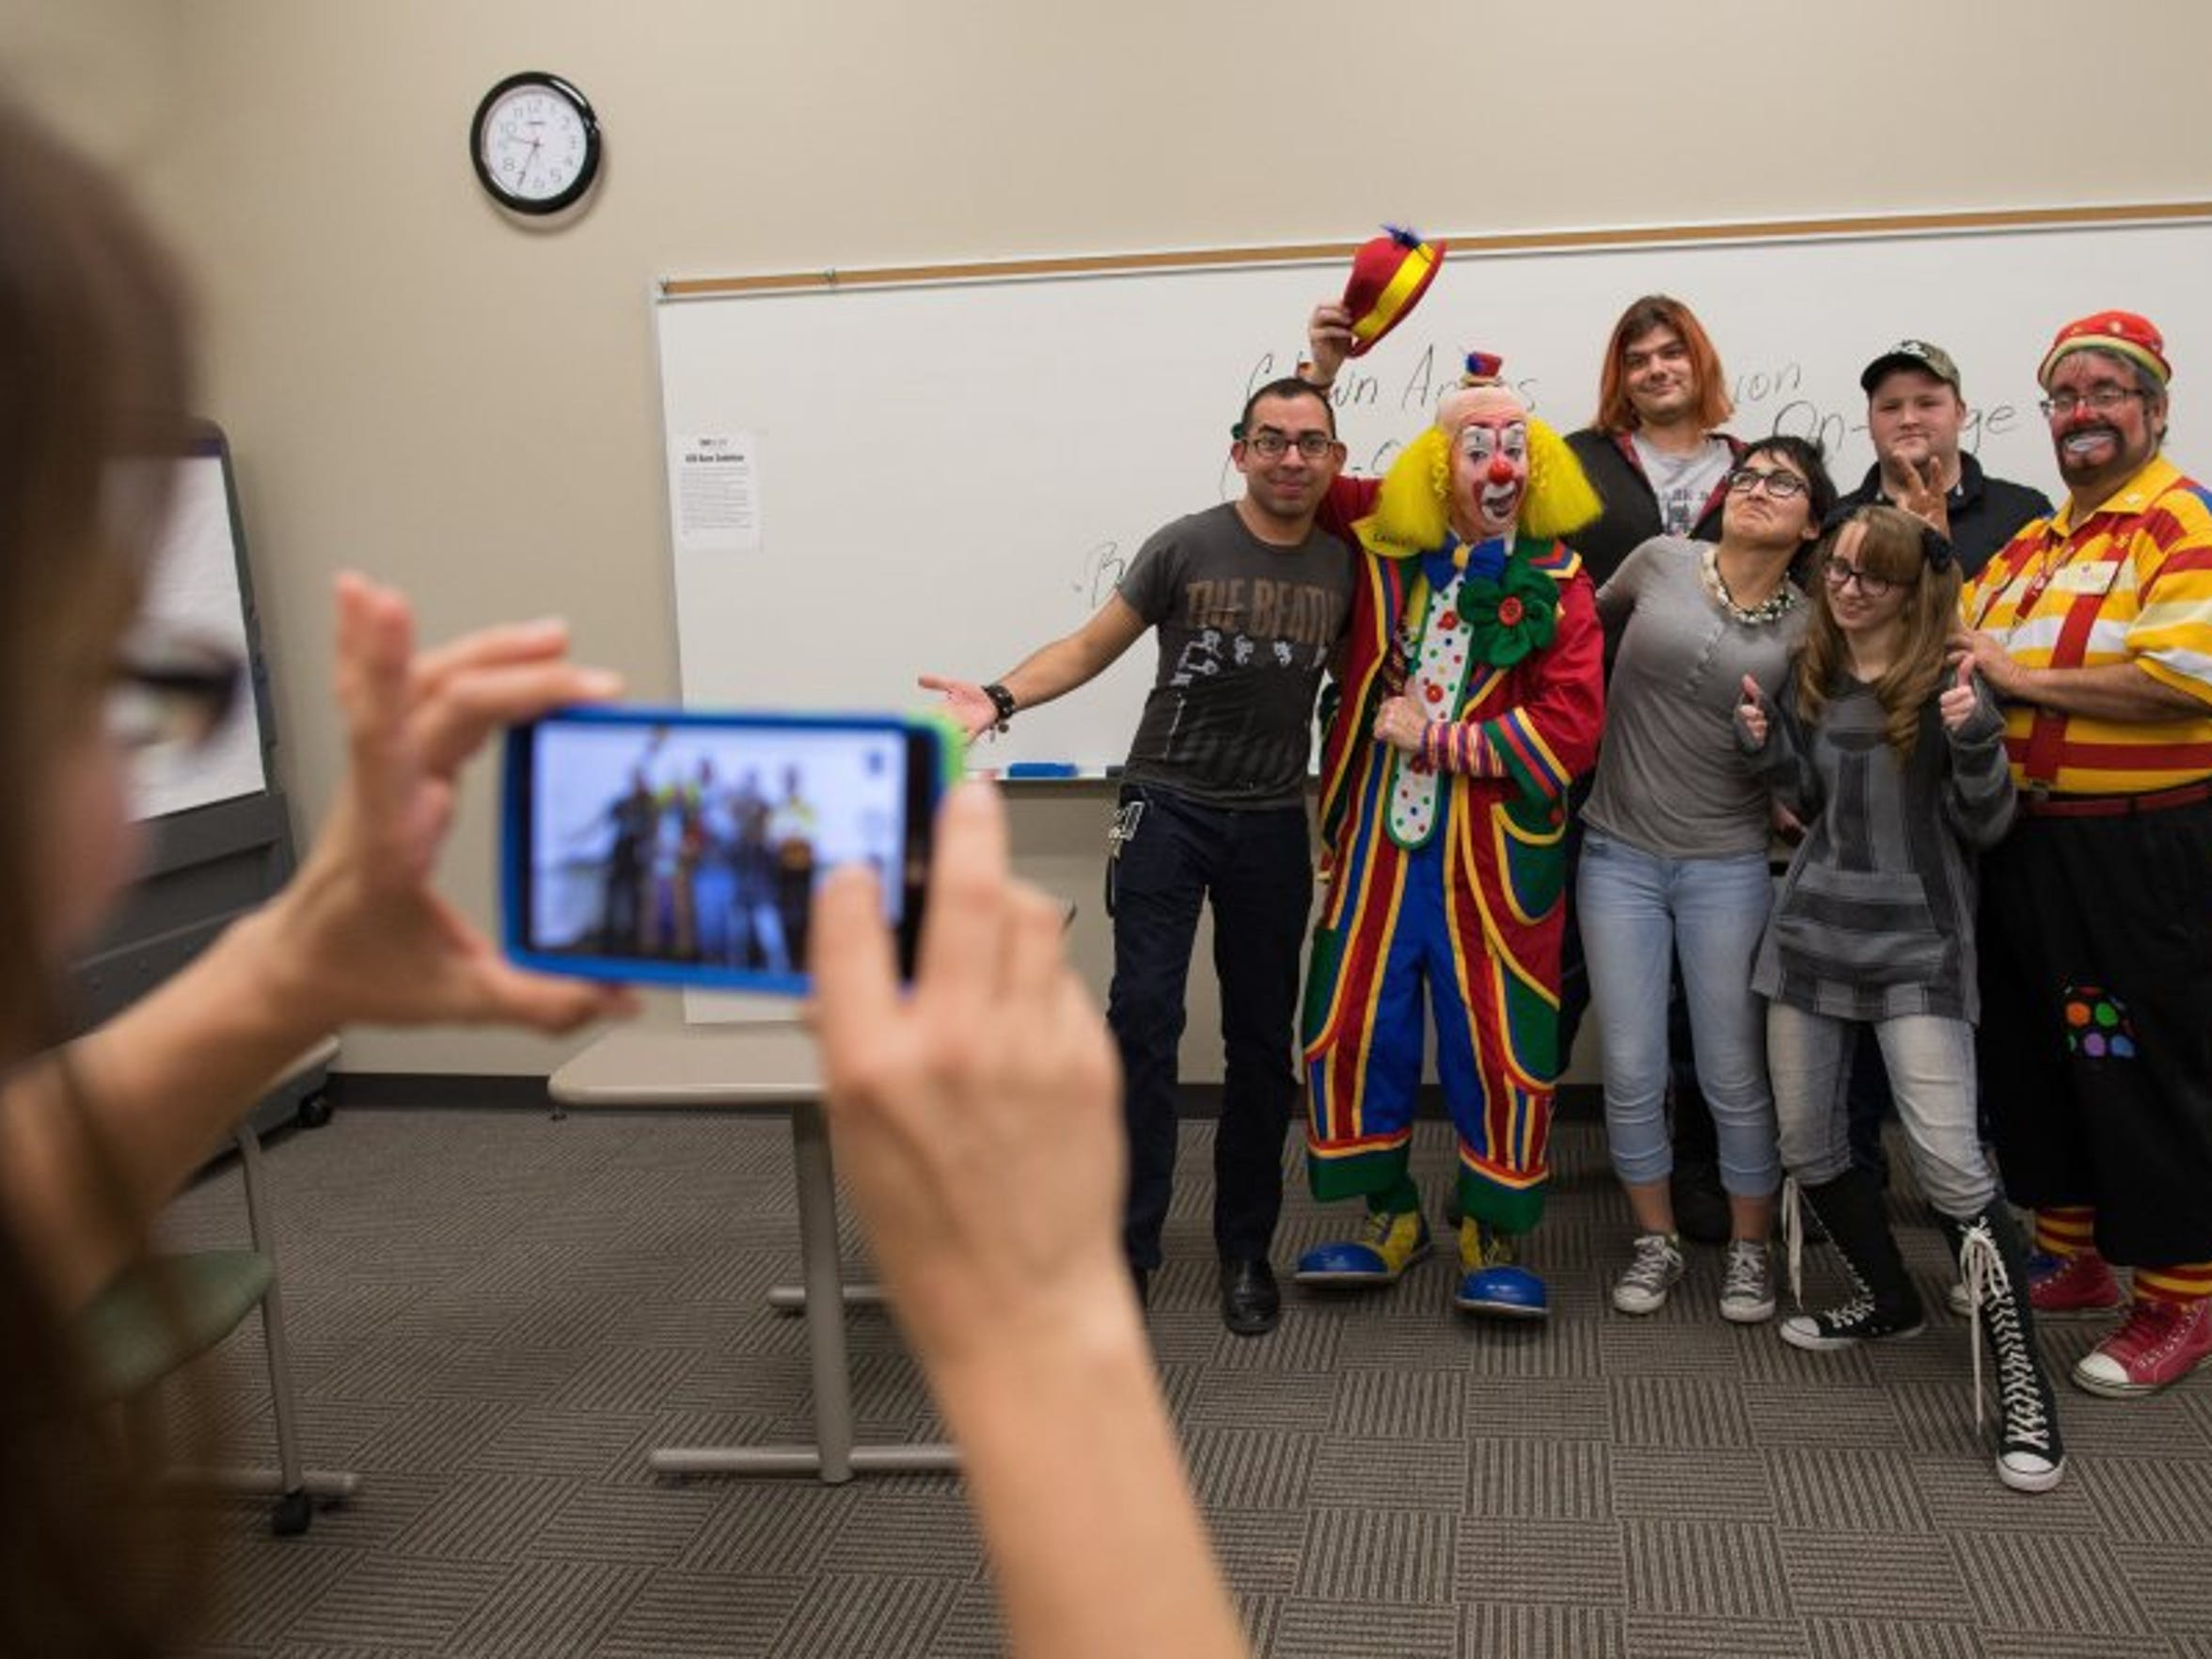 COURTNEY SACCO/CALLER-TIMES Denise Underwood (from left) of Odem takes a photo of Orlando Valdez; Danny Kollaja, in character as Lanky the Clown; Benjamin Woodard; Christina Moreno; Katie Lynn Underwood; Ben Abbott; and Mark Johnson, in character as Bingo, at the end of their first Clown Class on Tuesday, Feb. 9, 2015, at Del Mar College in Corpus Christi.